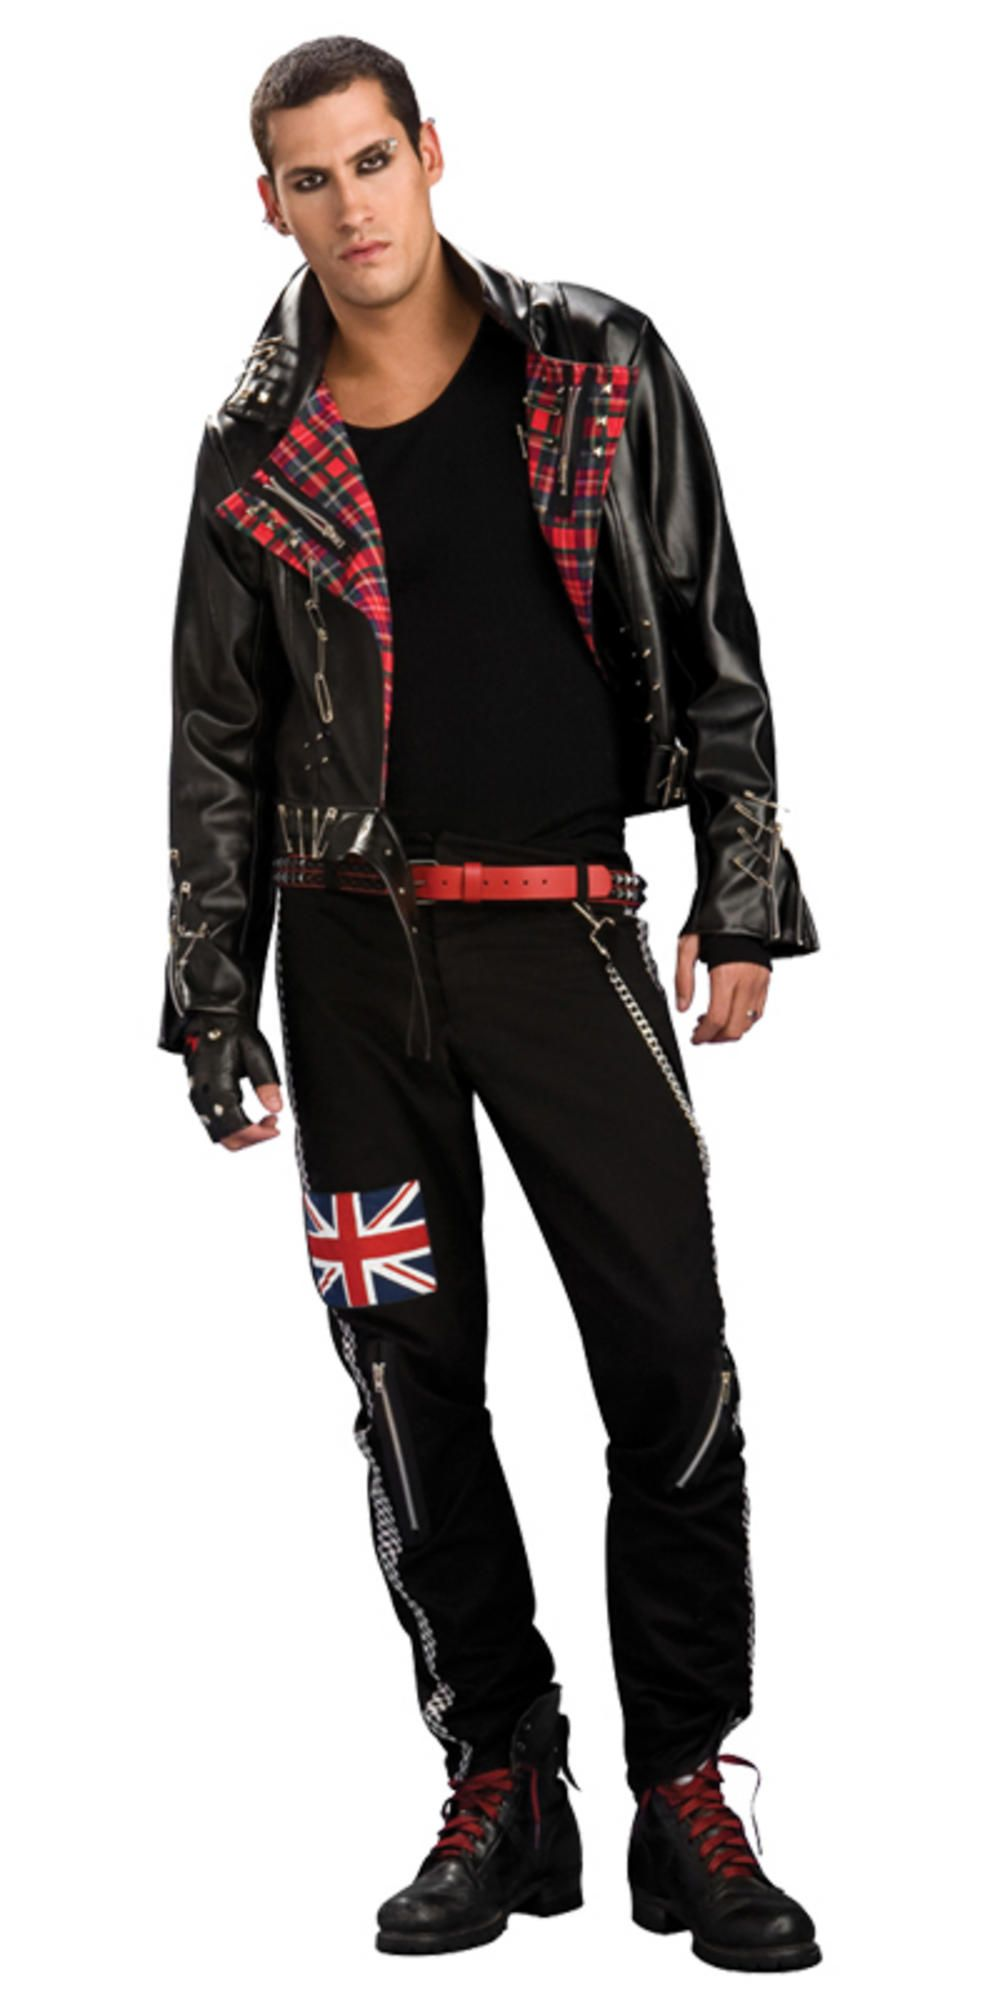 punk rocker costume ideas | punk rock halloween costume ideas